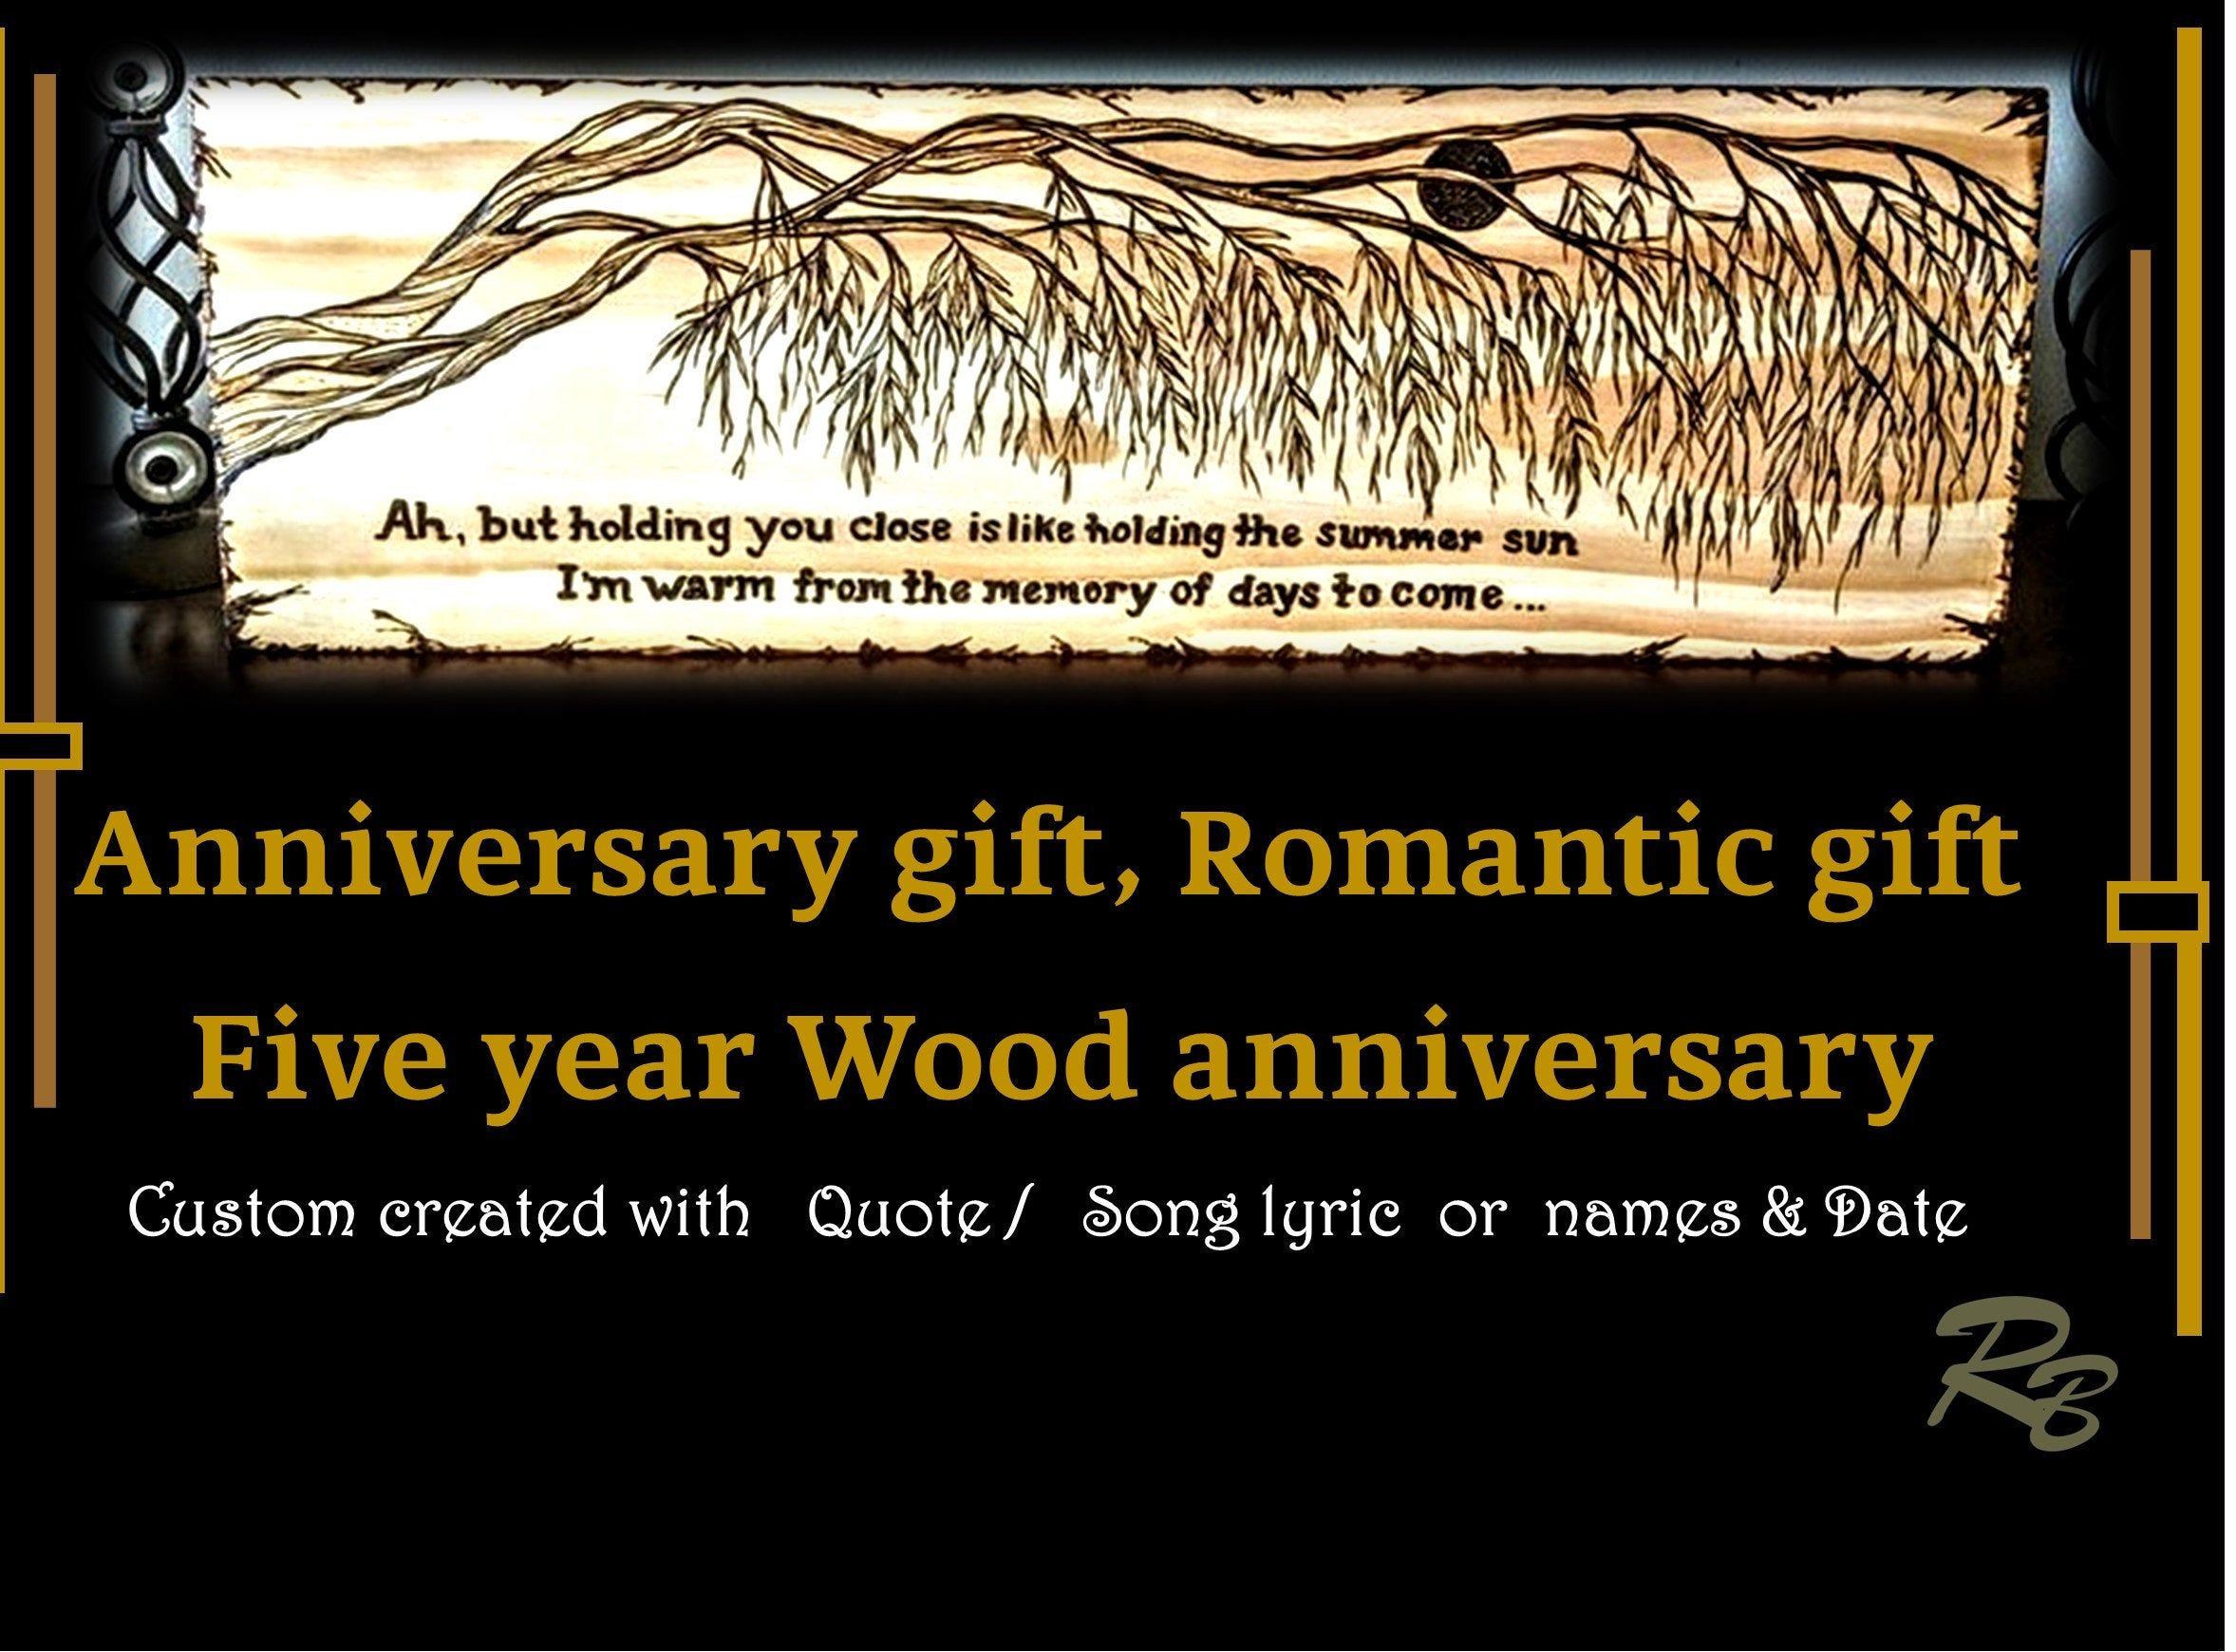 song quote, gift, wood anniversary gift,song lyric,Wedding